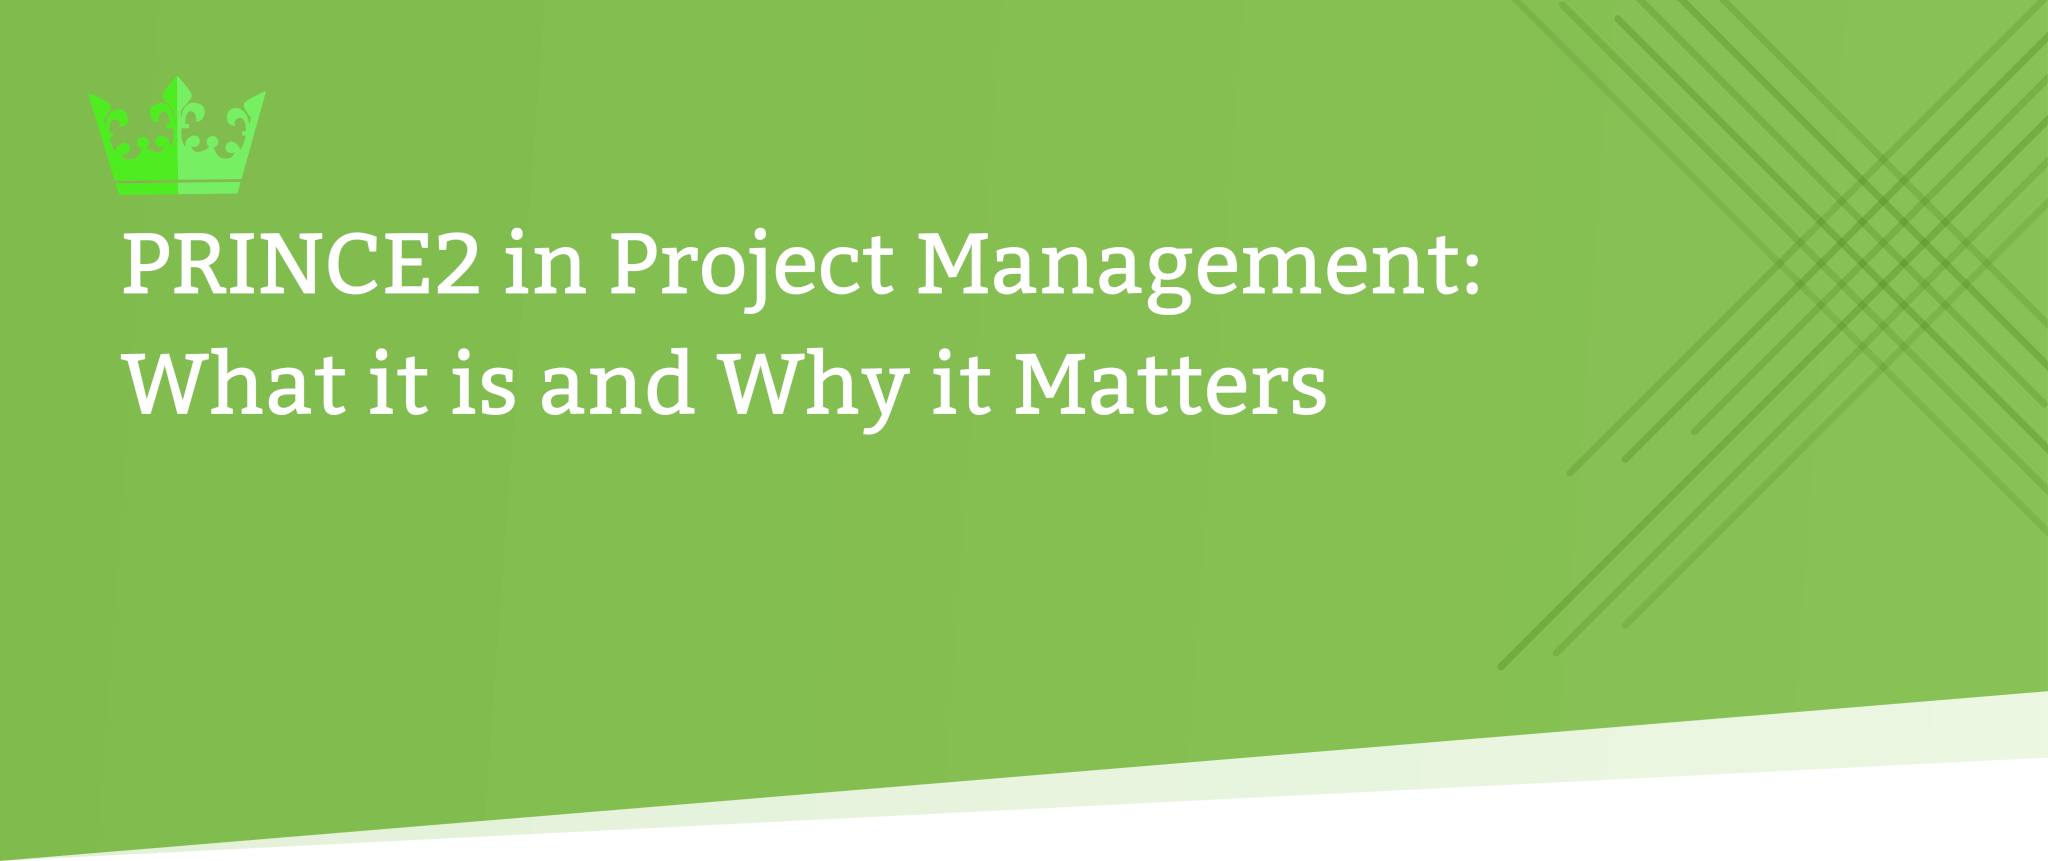 How To Use Prince2 For Project Management 5 Principles Tallyfy